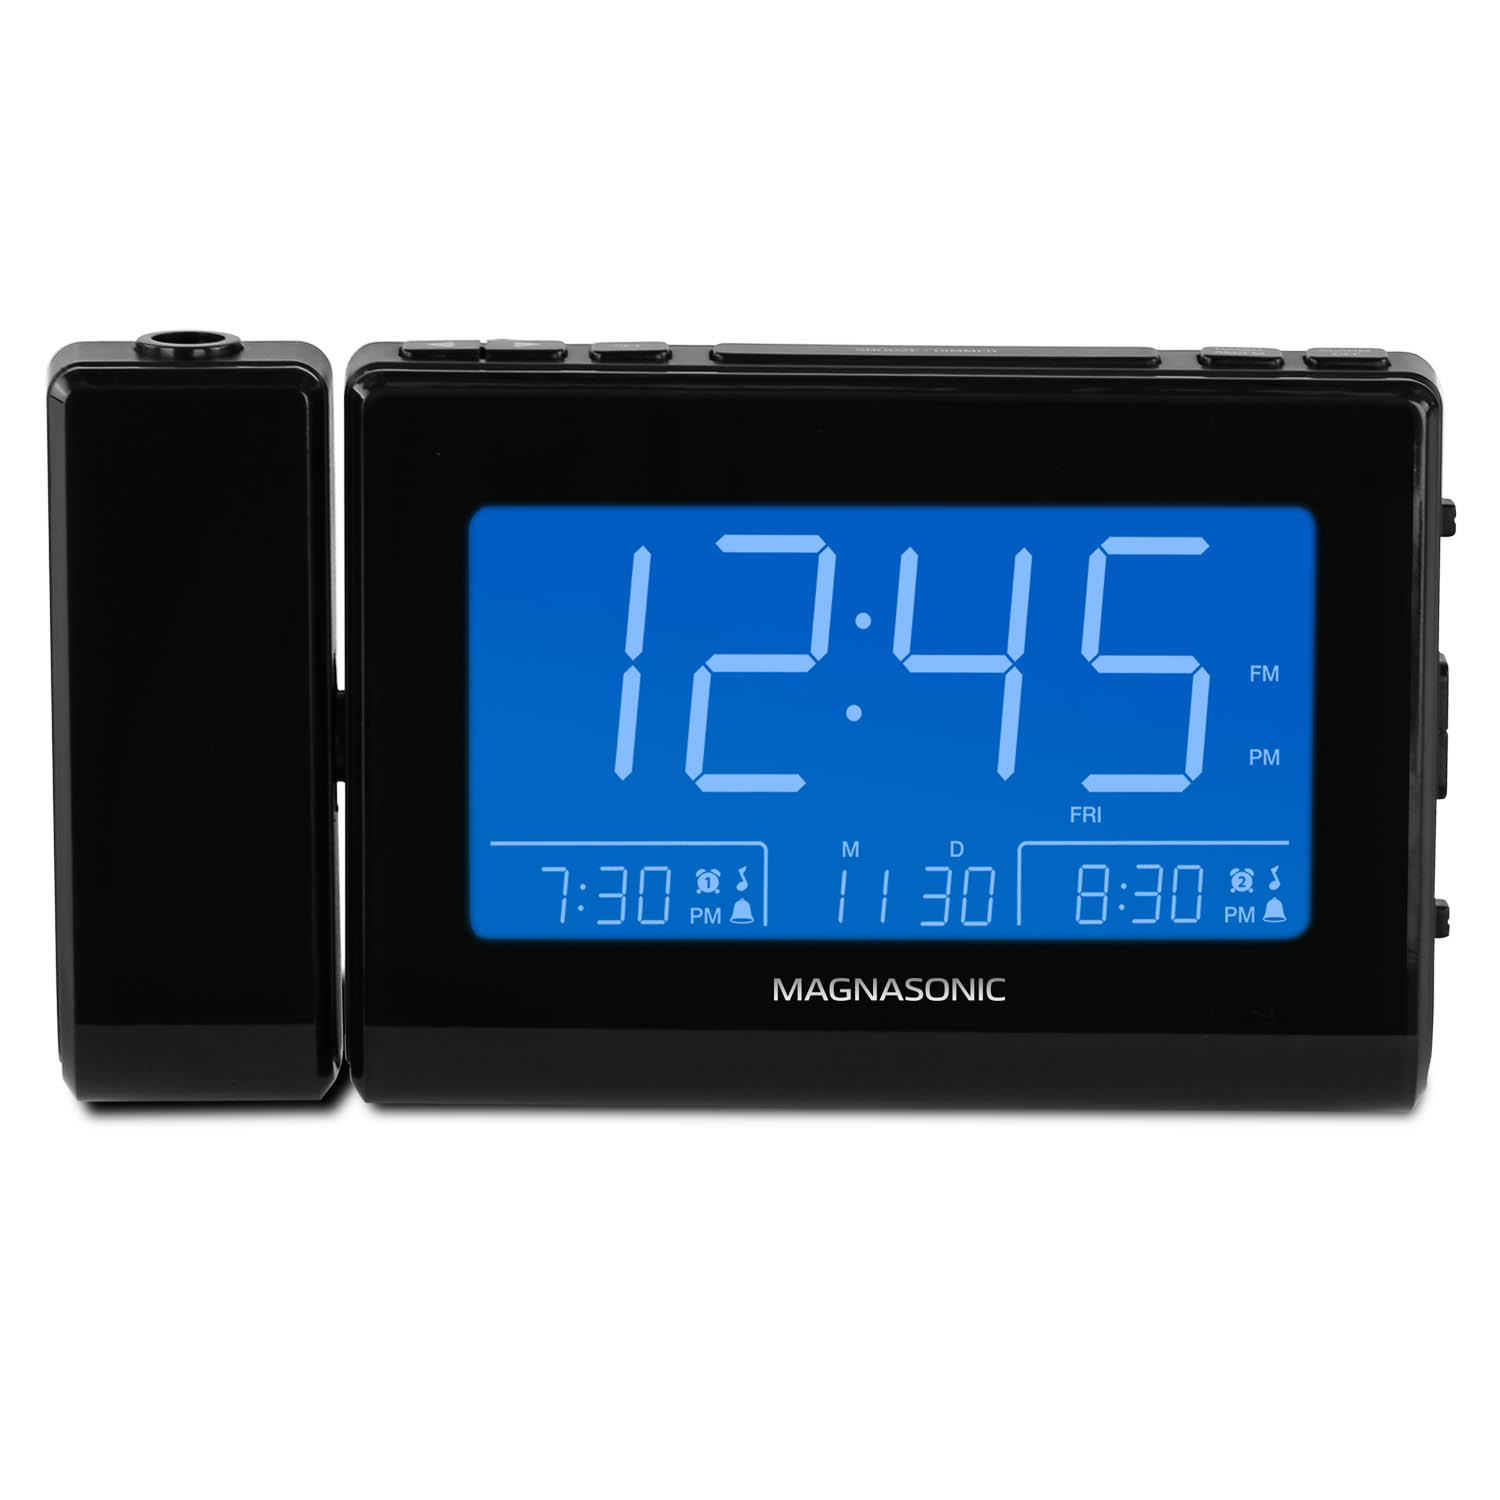 """Magnasonic Alarm Clock Radio with USB Charging for Smartphones & Tablets, Time Projection, Auto Dimming, Battery Backup, Auto Time Set, Large 4.8"""" LED Display, AM/FM (CR64) - 1 Year Extended Warranty - image 1 de 8"""